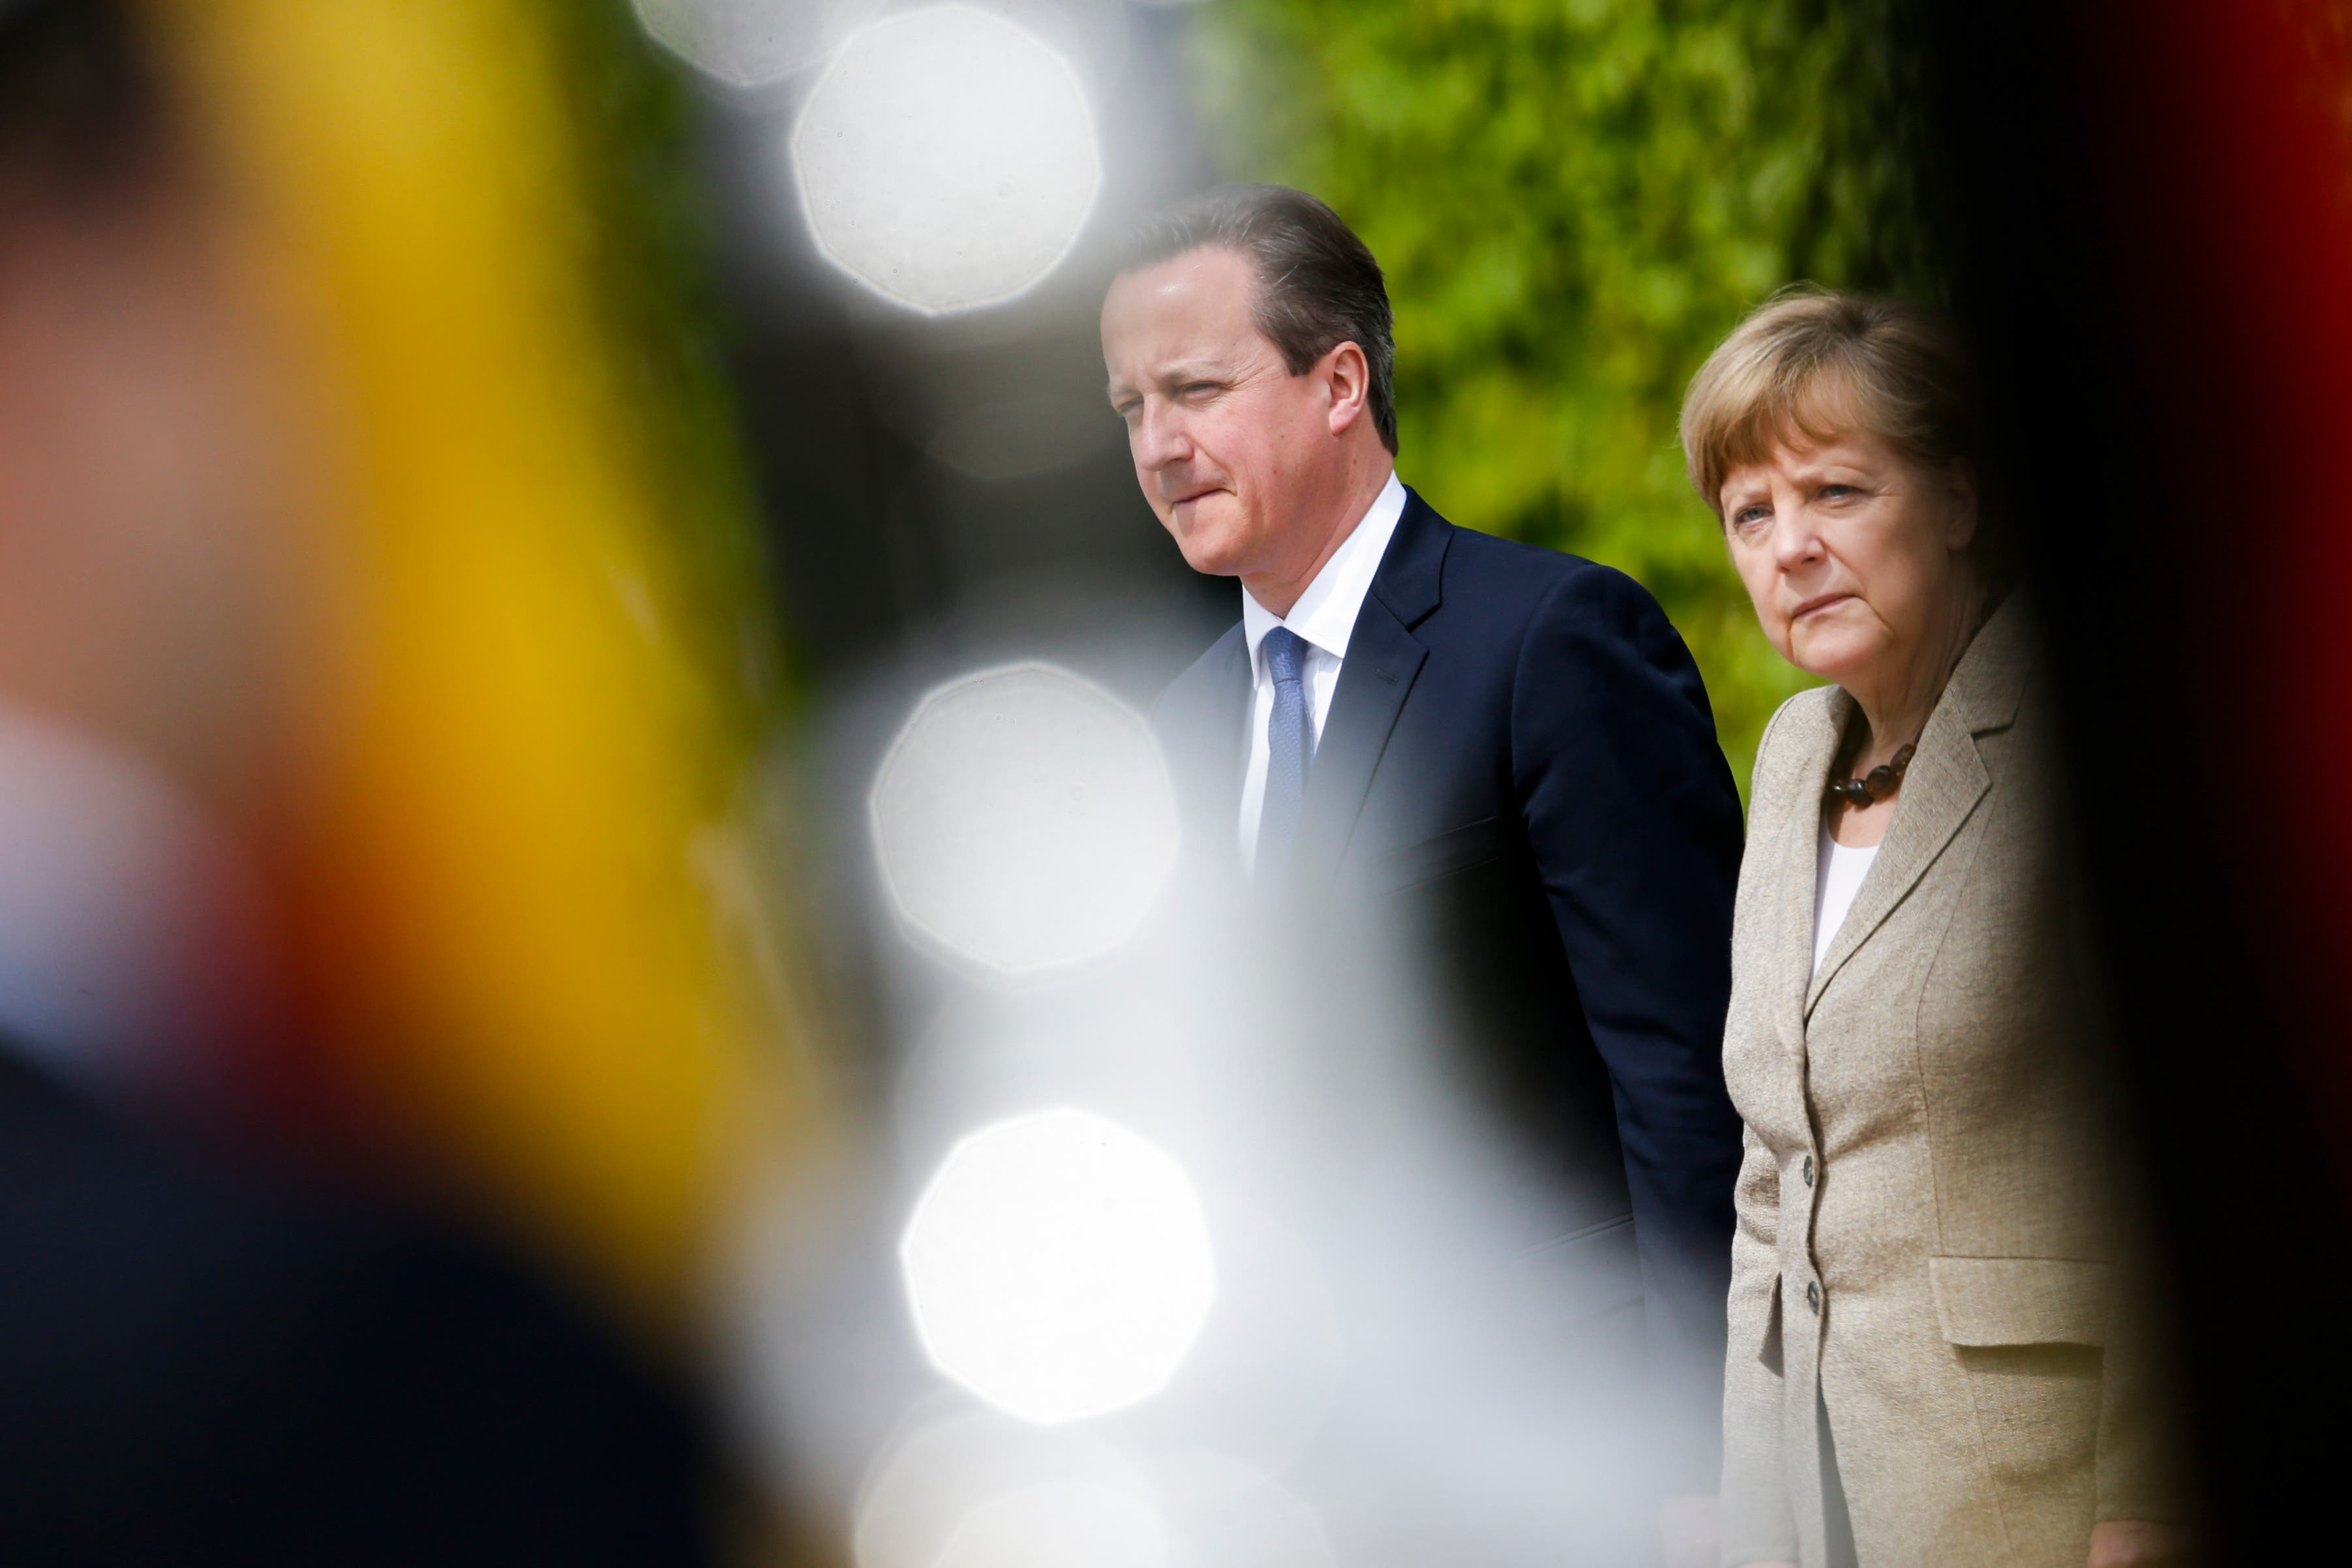 In this photo taken between musicians of the honor guards, German Chancellor Angela Merkel, right, and British Prime Minister David Cameron listen to the national anthems during the welcoming ceremony for a meeting at the chancellery, in Berlin, Germany, Friday, May 29, 2015. (AP Photo/Markus Schreiber)